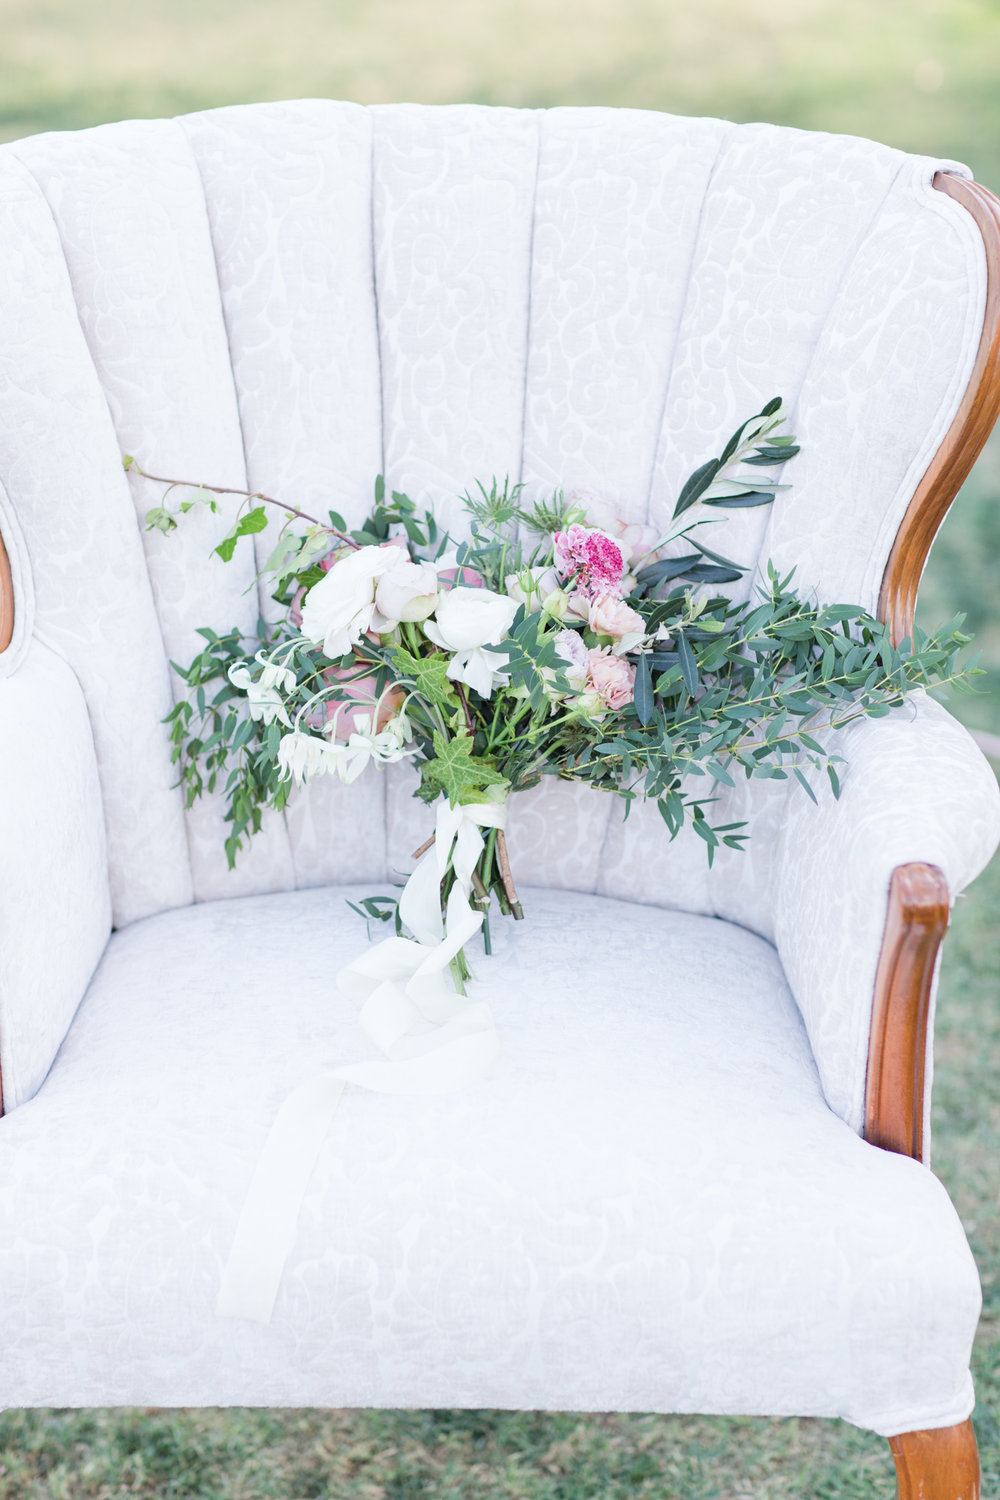 Ronna Channel Back Arm Chair 1 - Provenance Vintage Rentals Los Angeles Sweetheart Table Seating Vintage Lounge White Upholstered Arm Chair Party Rentals Specialty Rentals Los Angeles